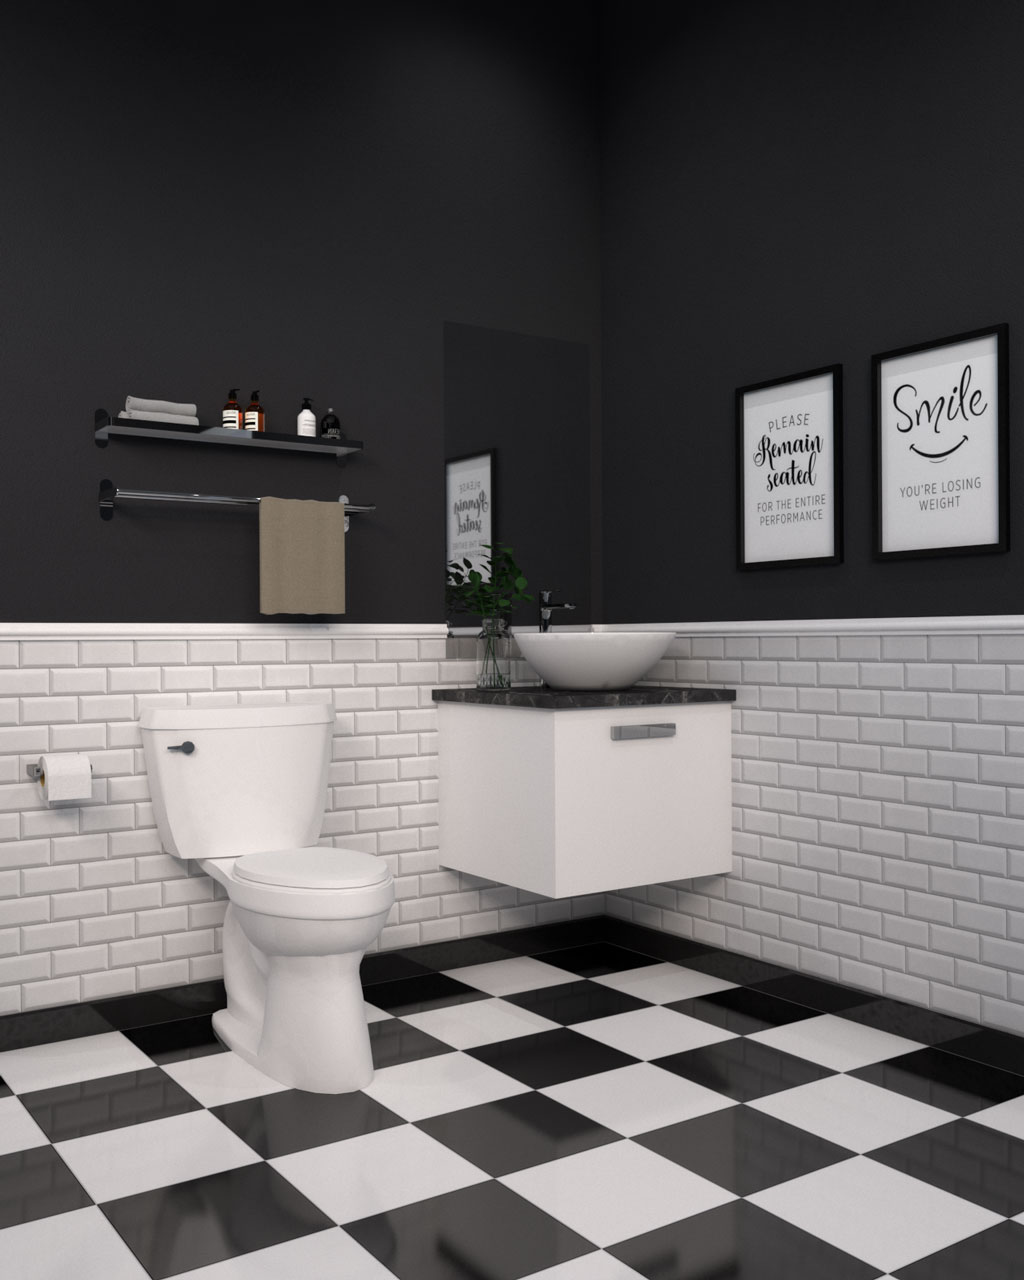 Bathroom ideas with black and white flooring and black and white walls